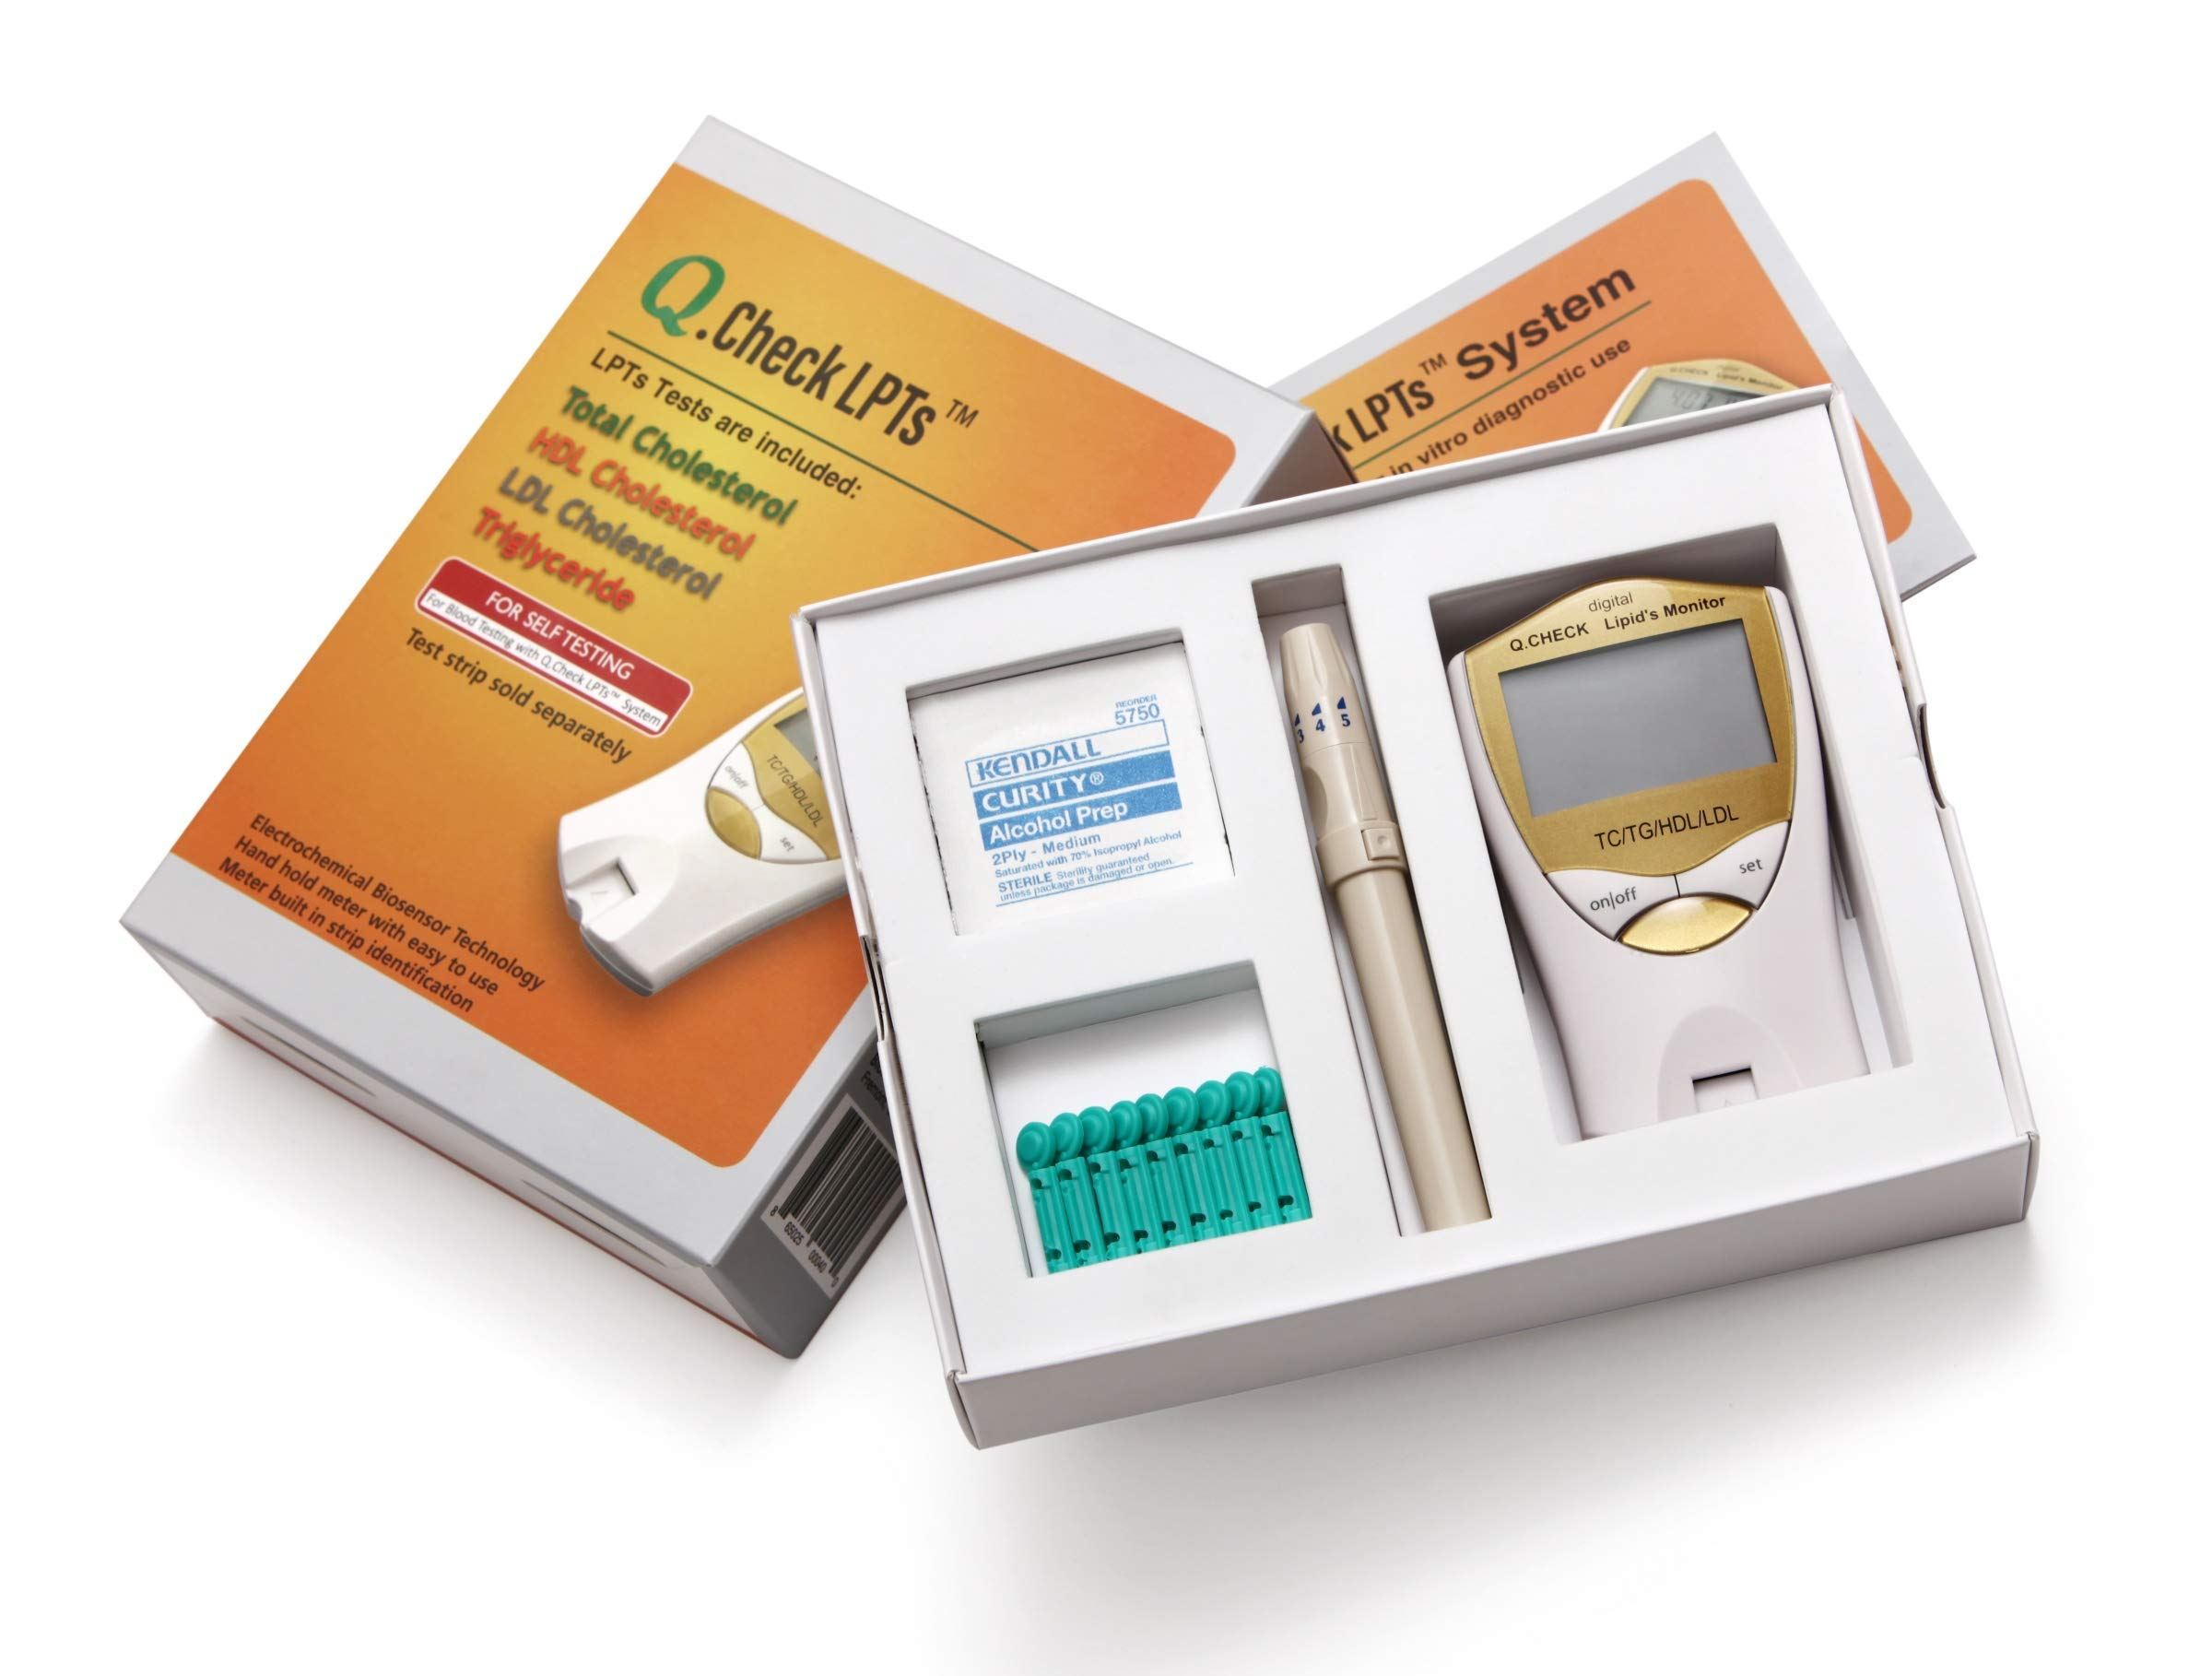 Helse Q.Check Digital Home Cholesterol & Lipid Test Meter, Monitors Total Cholesterol, LDL, HDL, and Triglycerides, 1 count